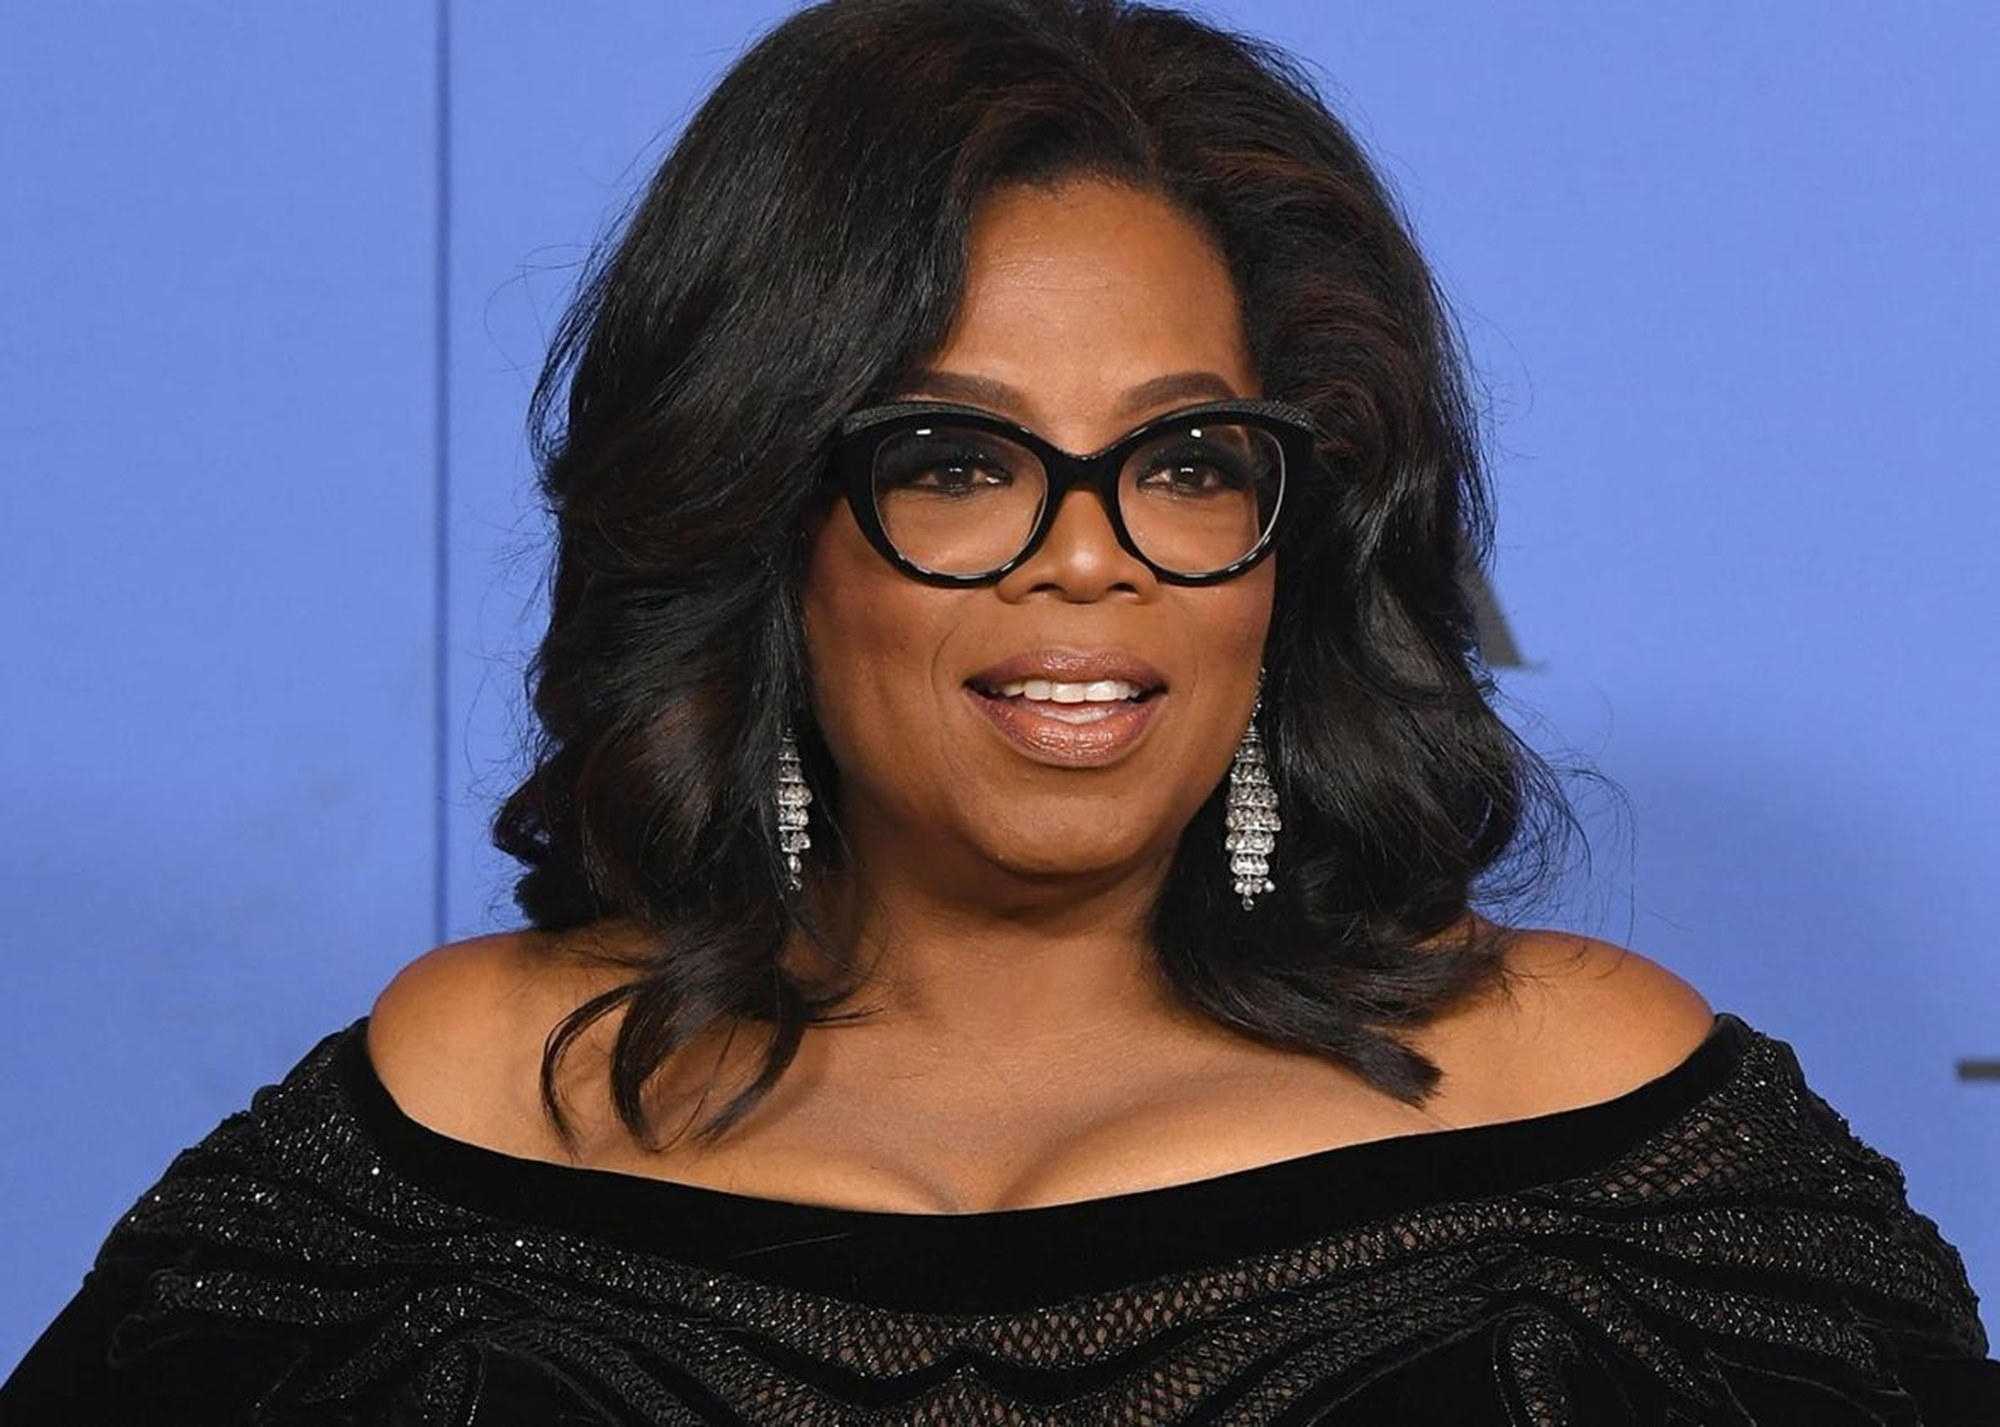 Oprah slams 'FAKE' report that she was arrested for sex trafficking